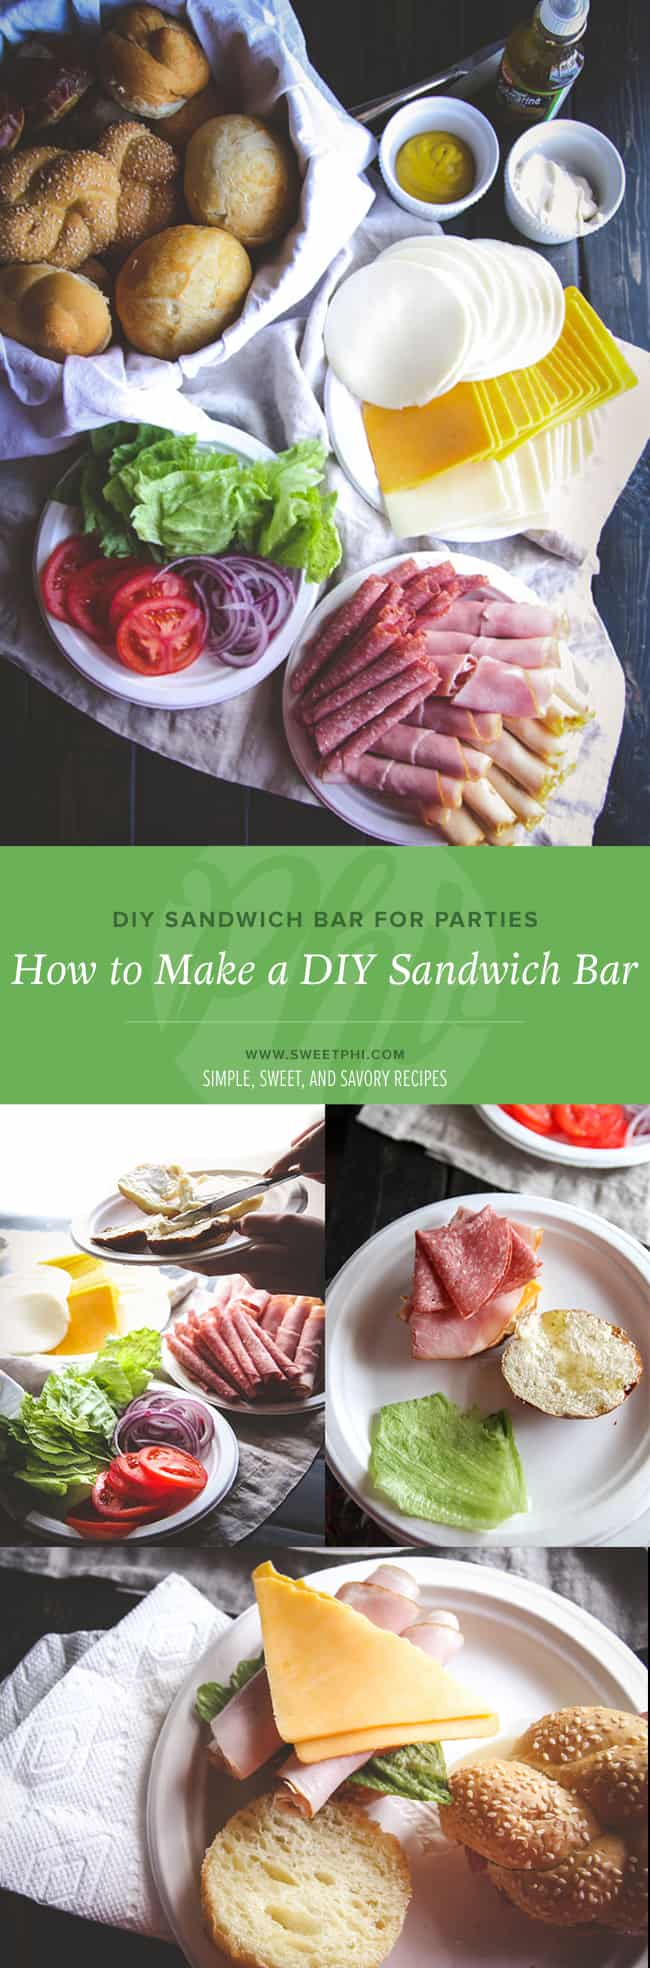 How to make a DIY sandwich bar for parties